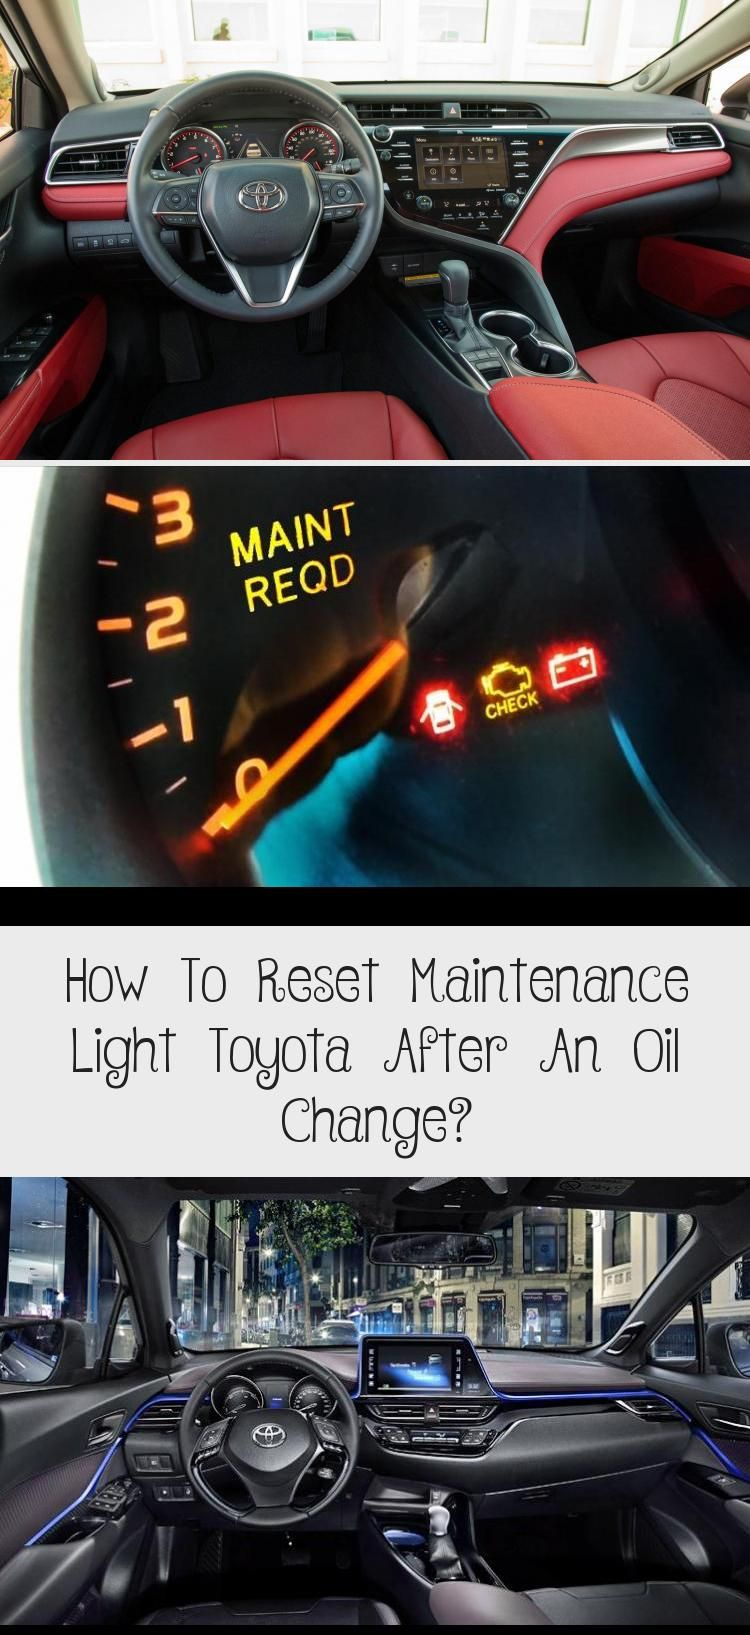 How To Reset Maintenance Light Toyota After An Oil Change